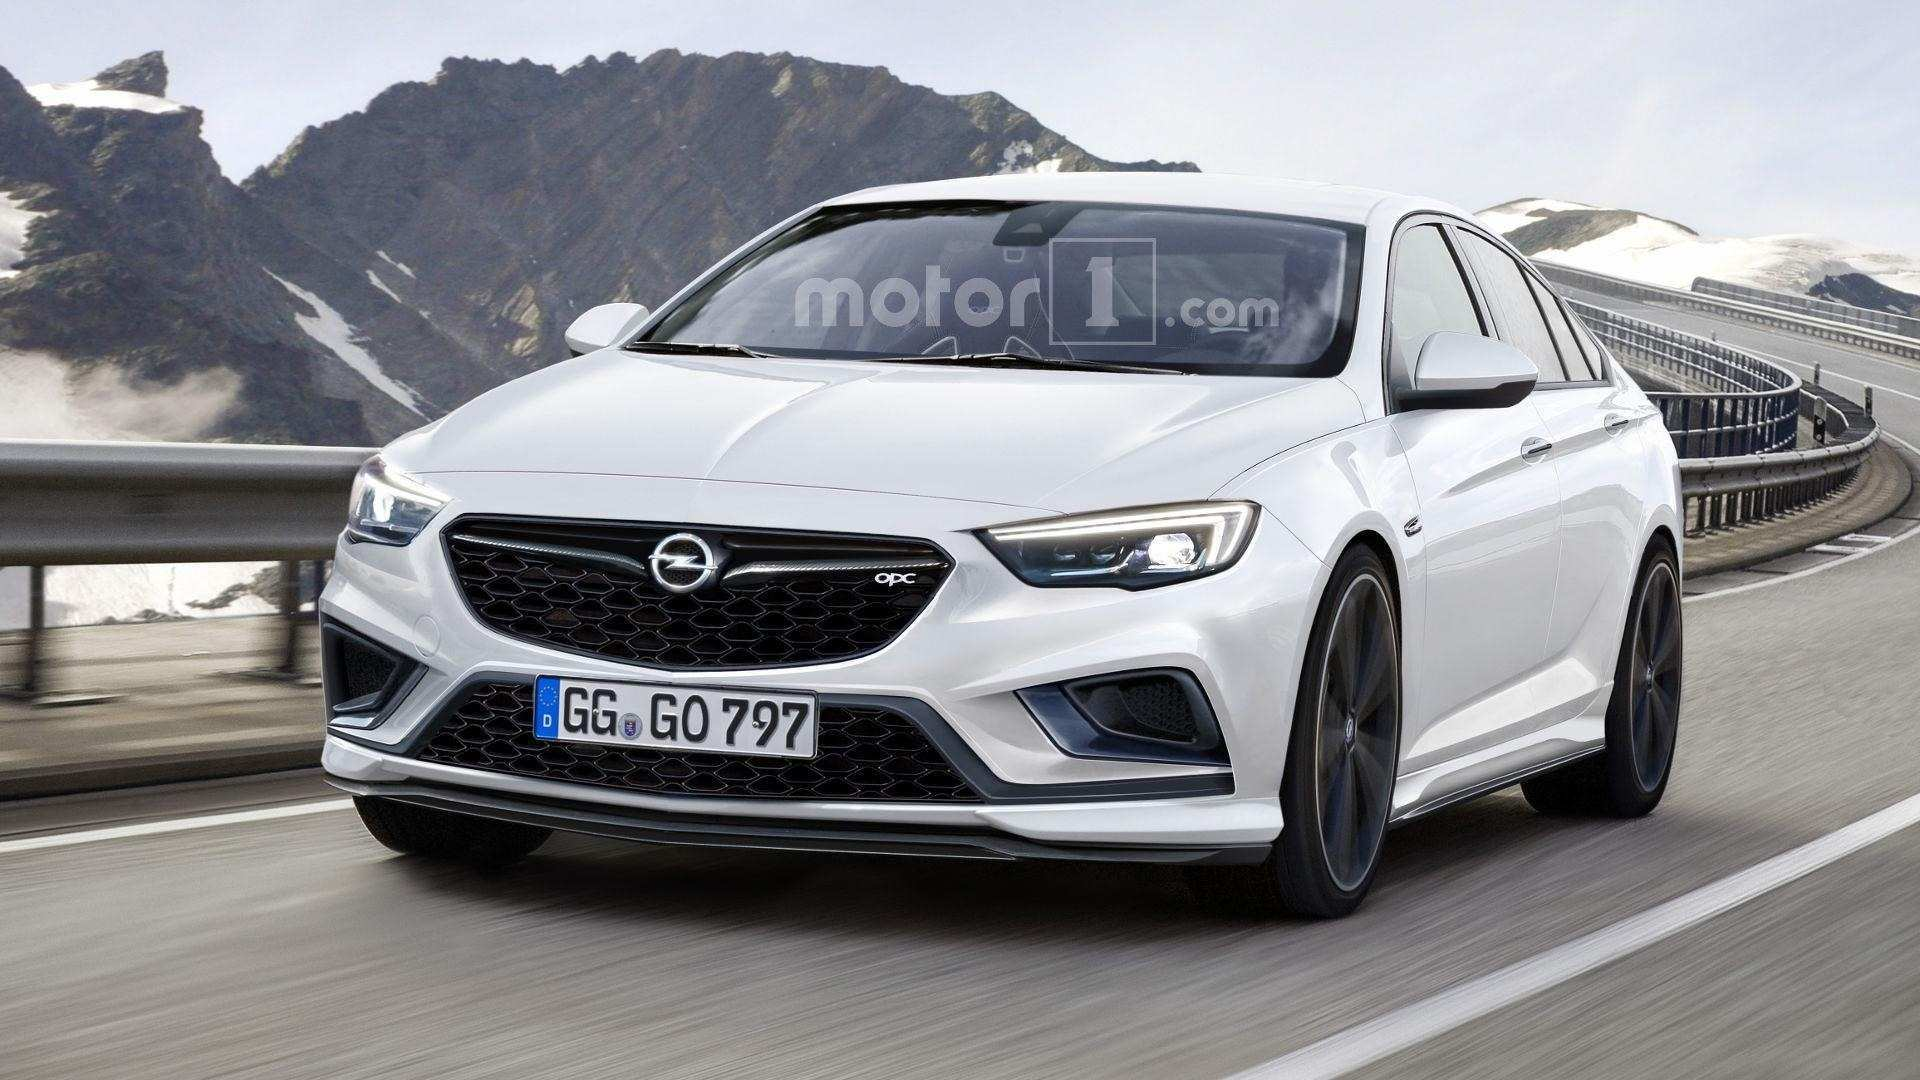 76 All New 2020 Opel Insignia 2020 Release Date for 2020 Opel Insignia 2020